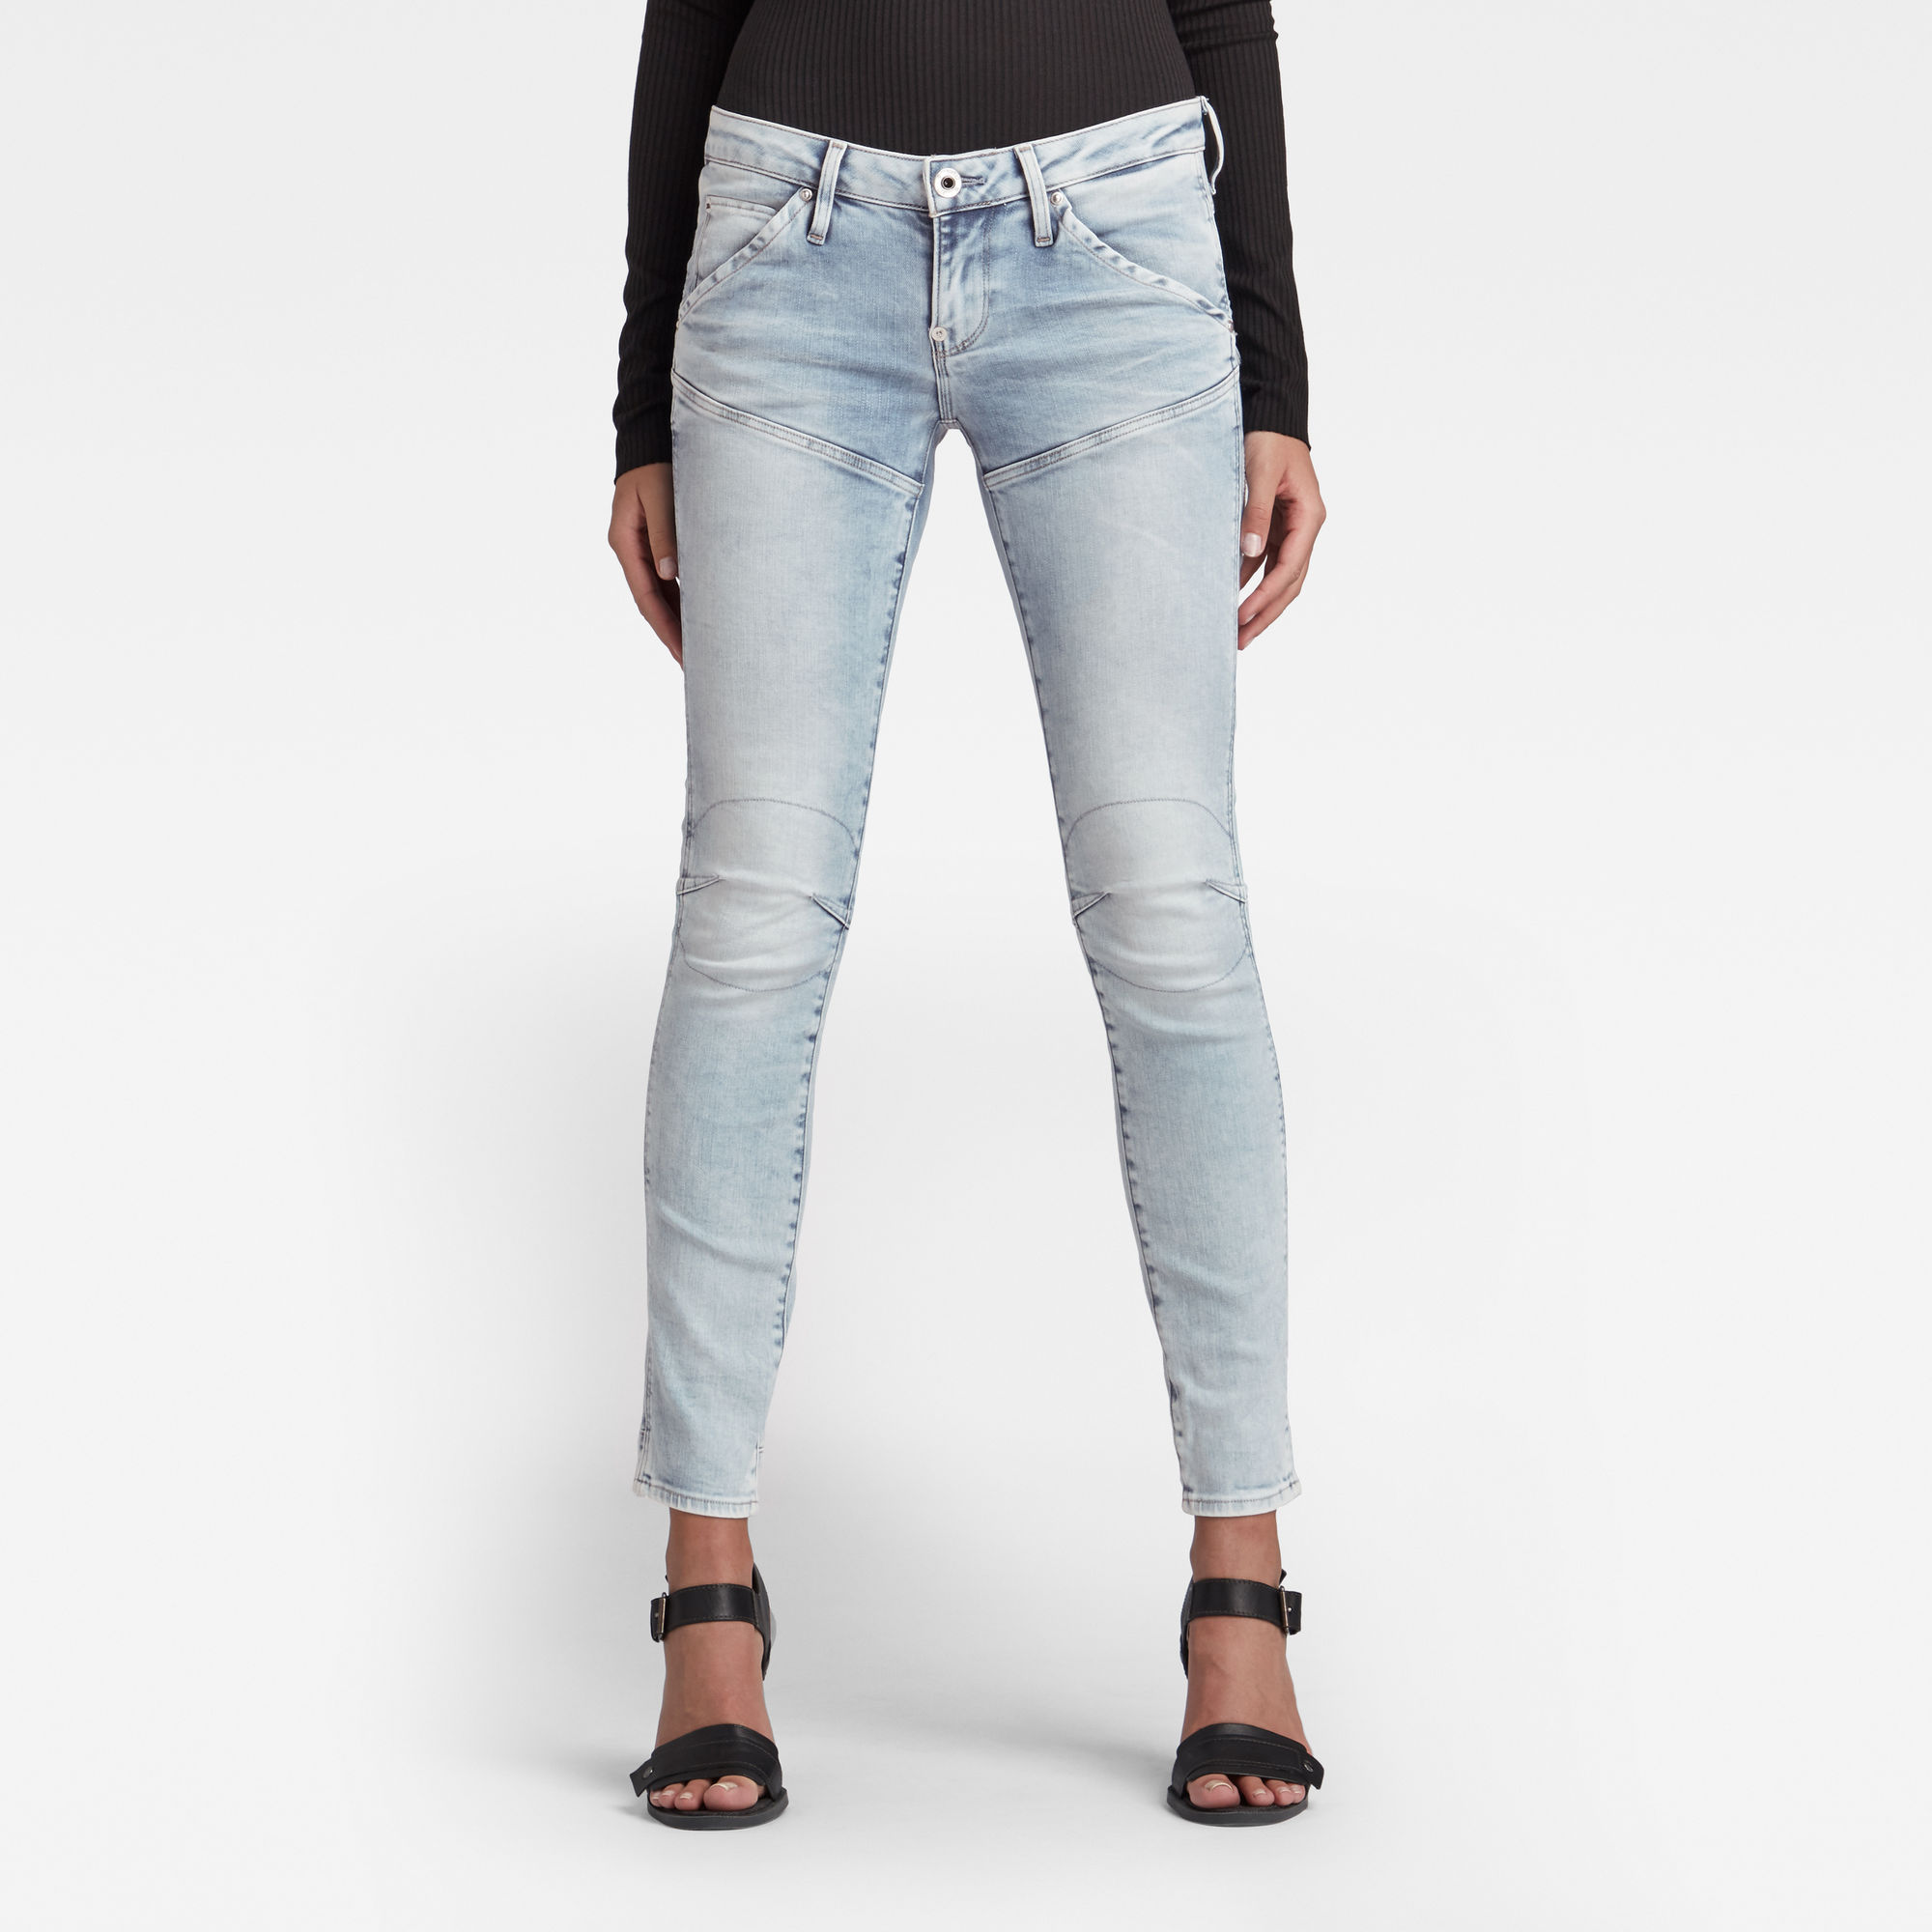 G-Star RAW Dames 5620 Heritage Embro Tapered Jeans Blauw